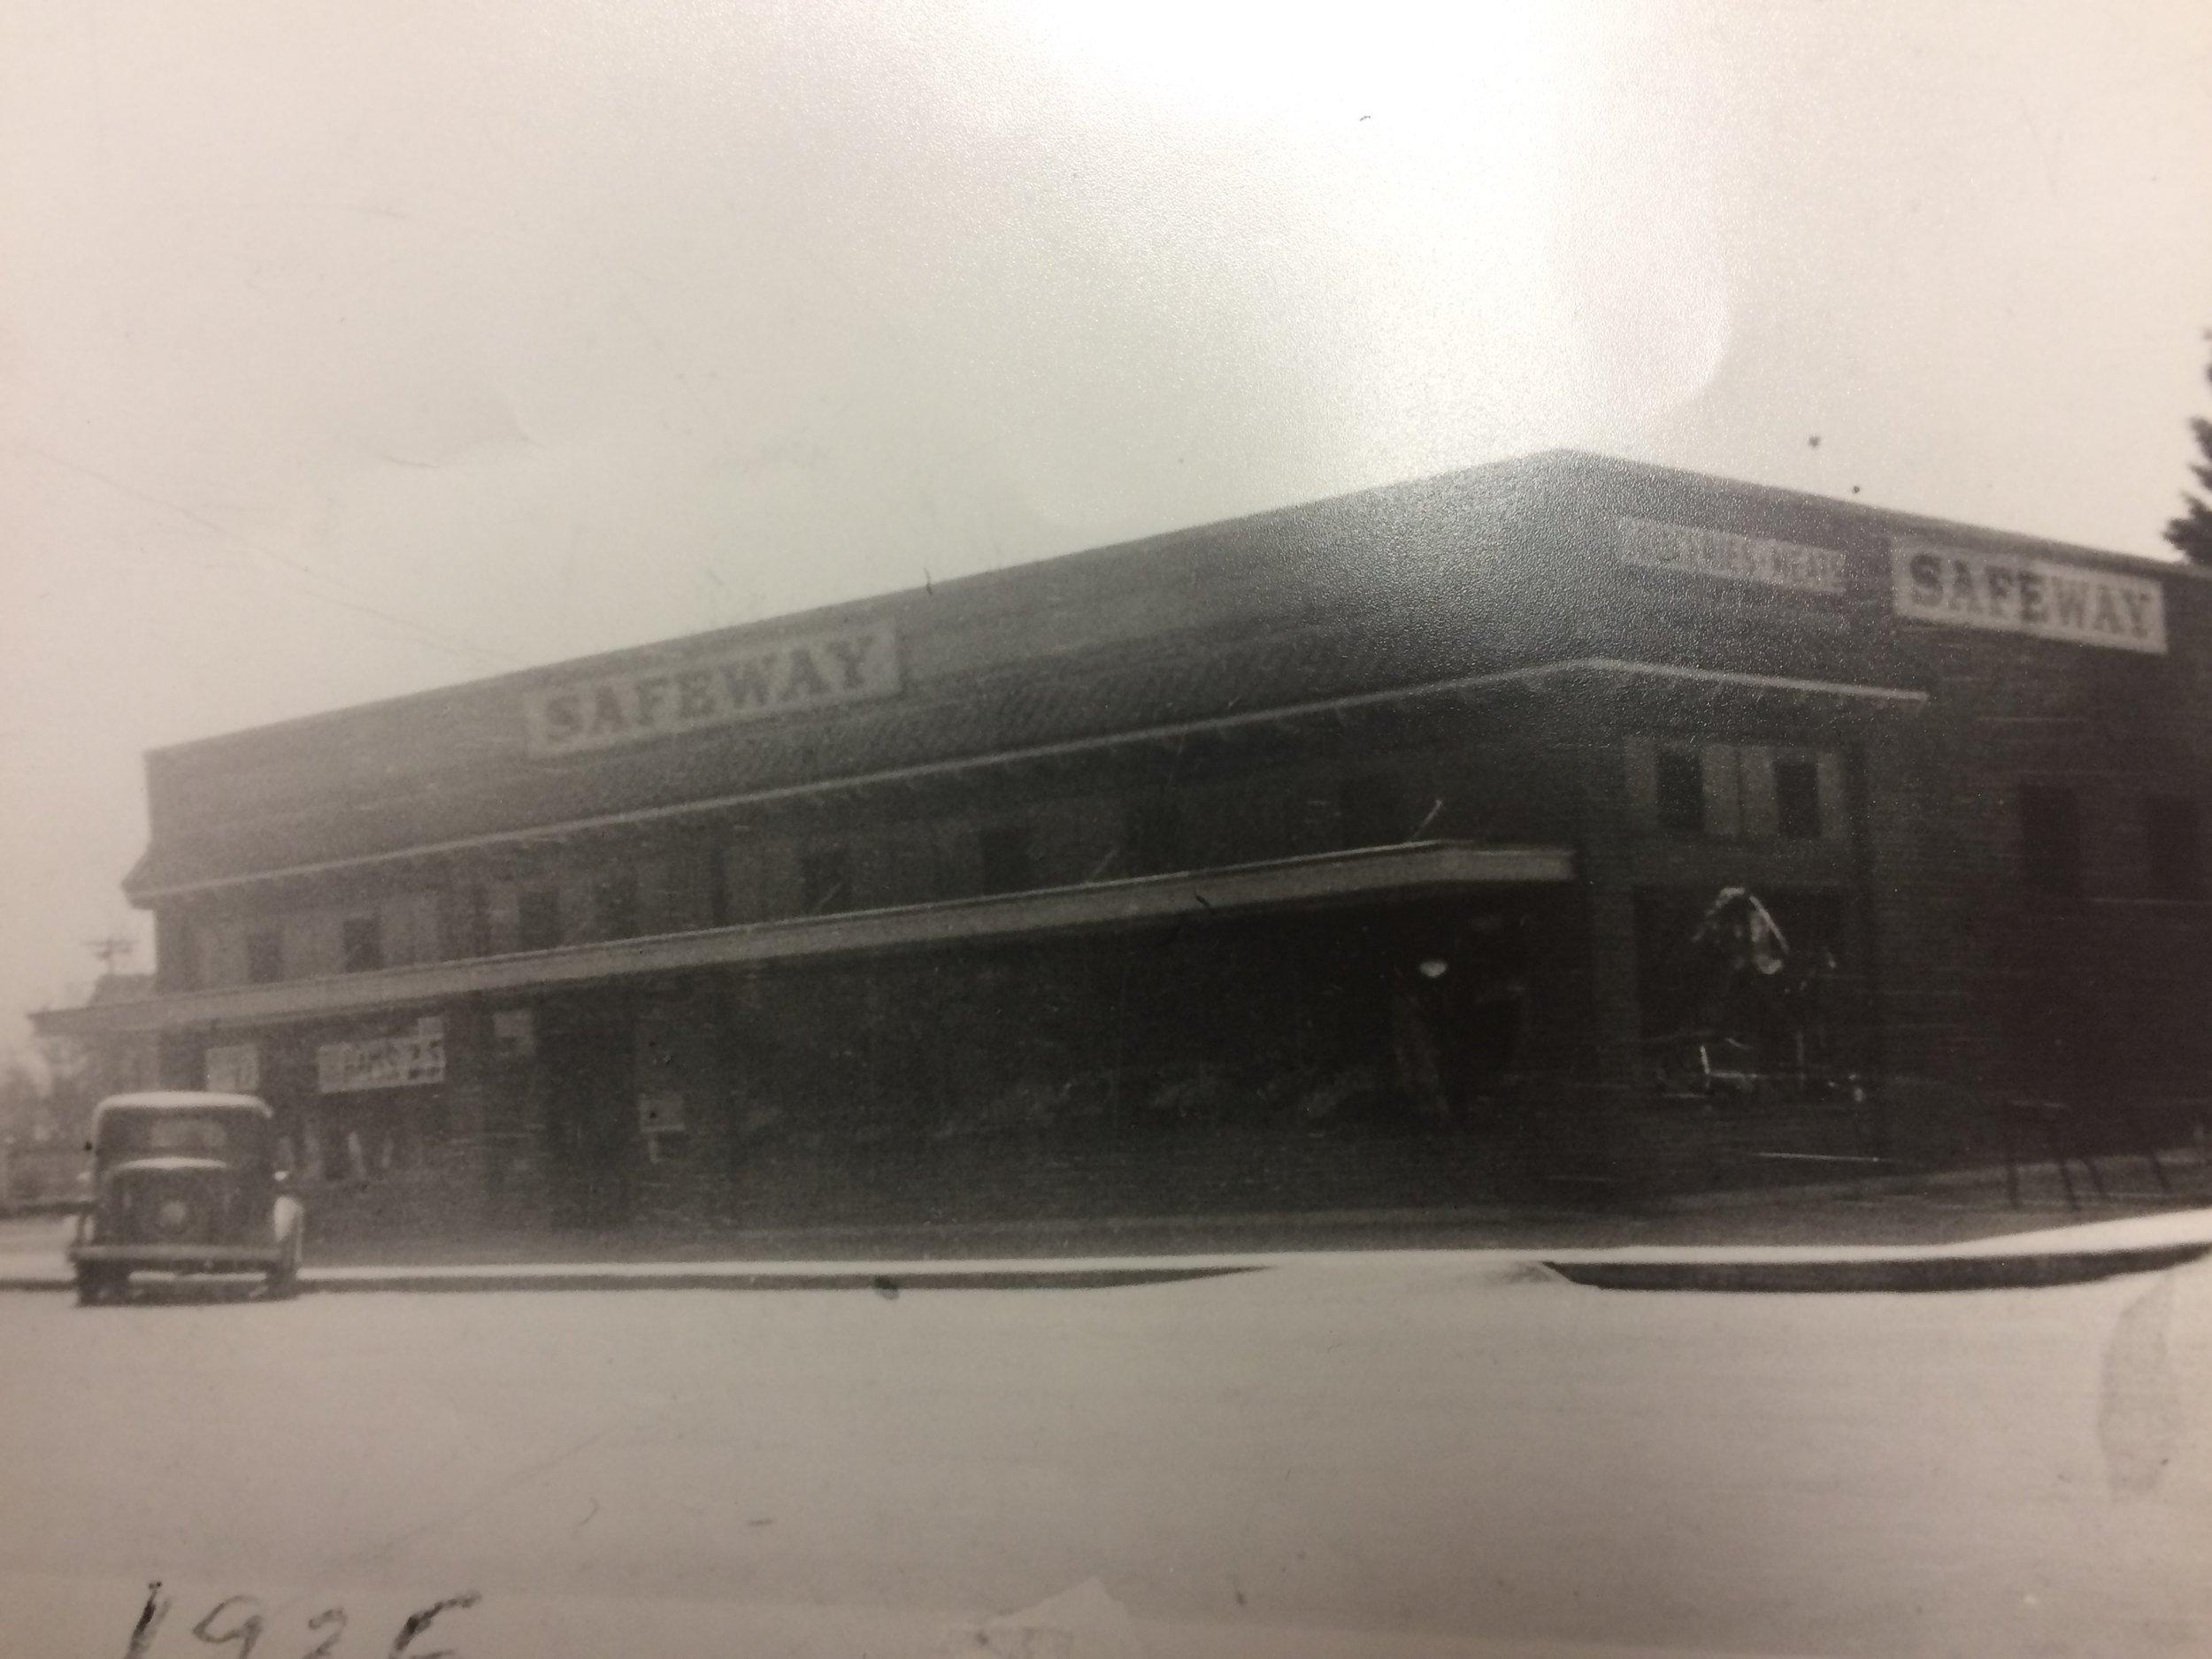 The Missoula Senior Center was originally a Safeway built here at 705 S. Higgins in 1928. Later it became a Buttrey's (picture featured below)